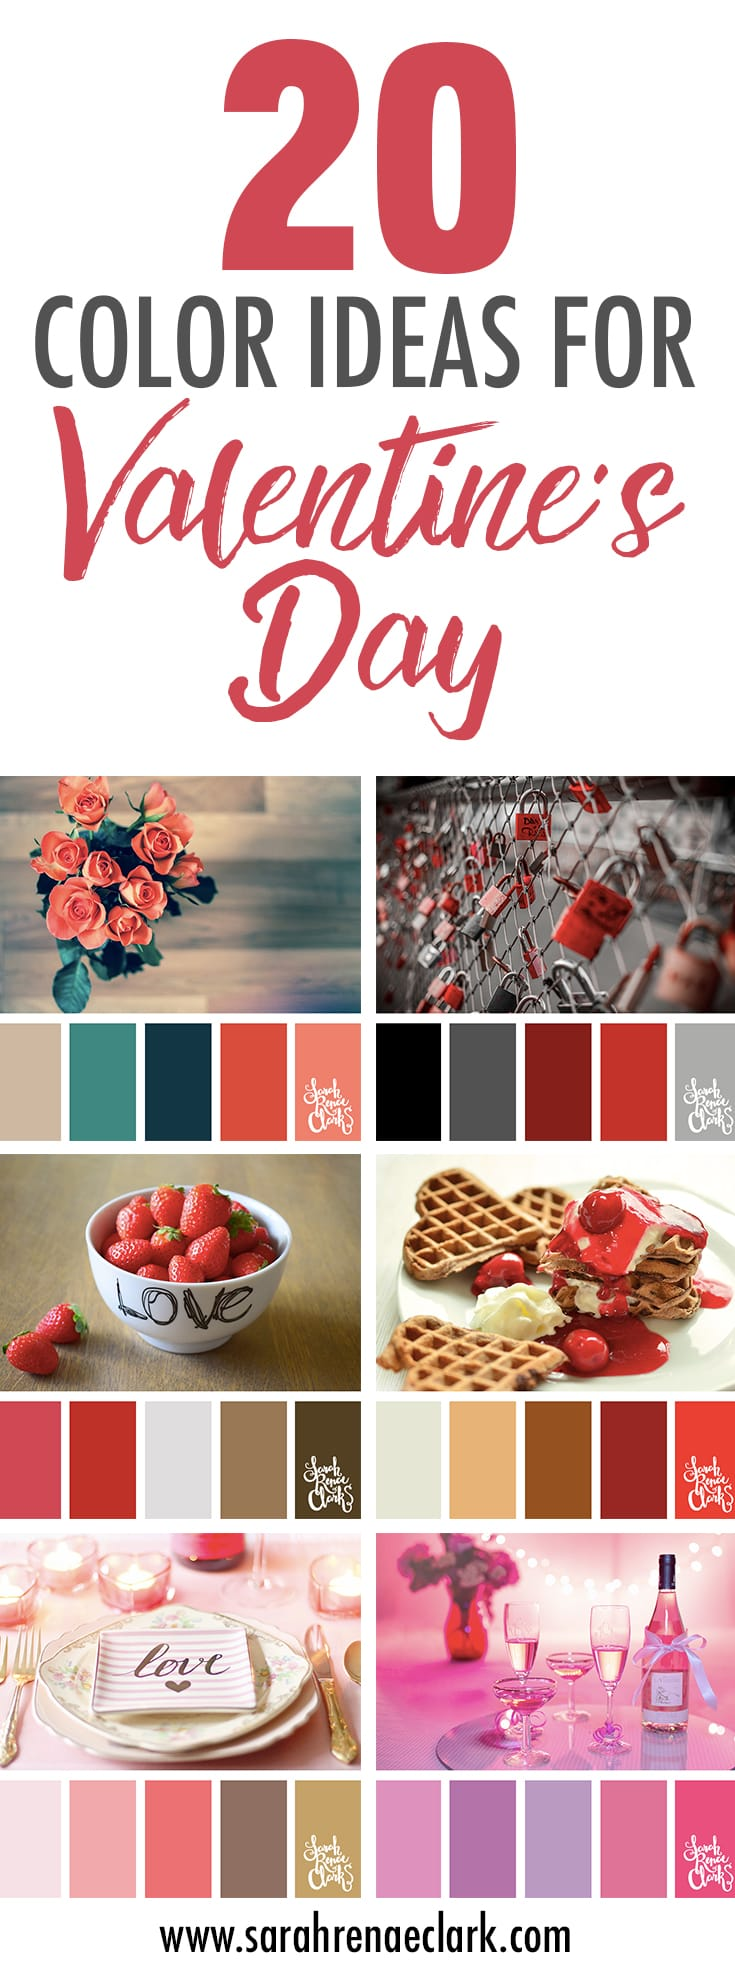 20 Color Ideas For Valentine's Day | Color Palettes, Color Schemes, Color Inspiration | www.sarahrenaeclark.com